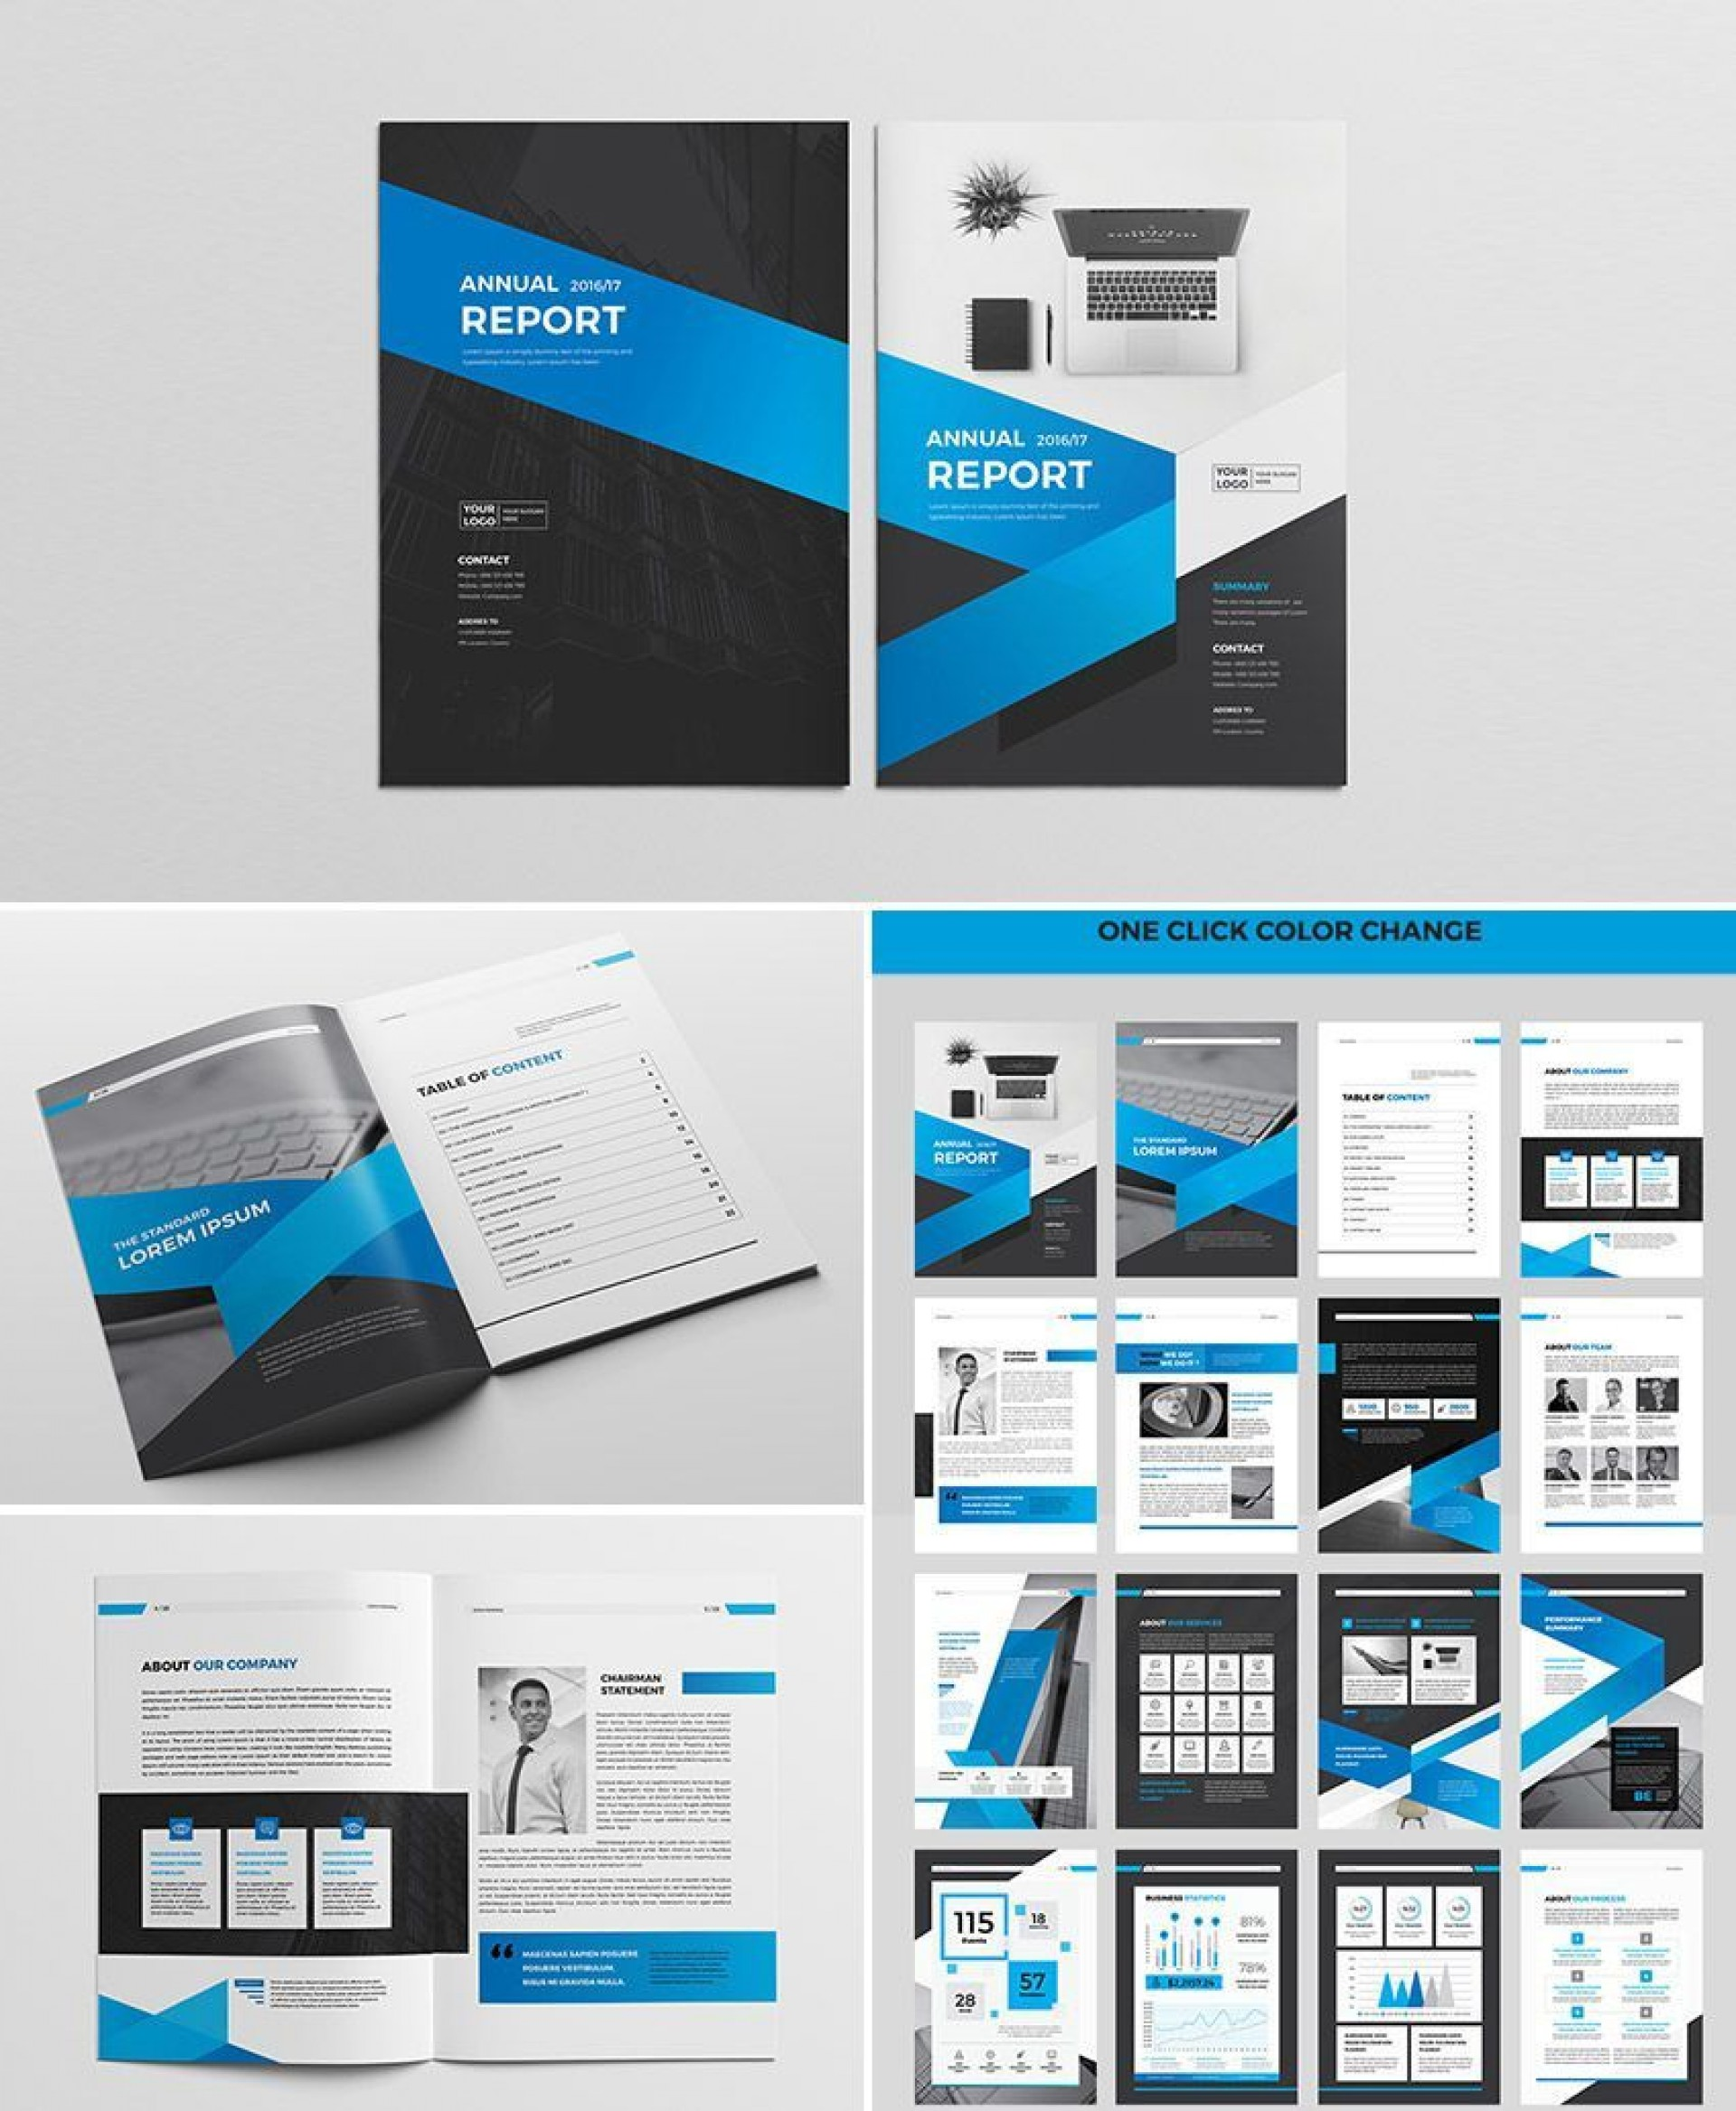 002 Imposing Free Annual Report Template Indesign Example  Adobe Non Profit1920